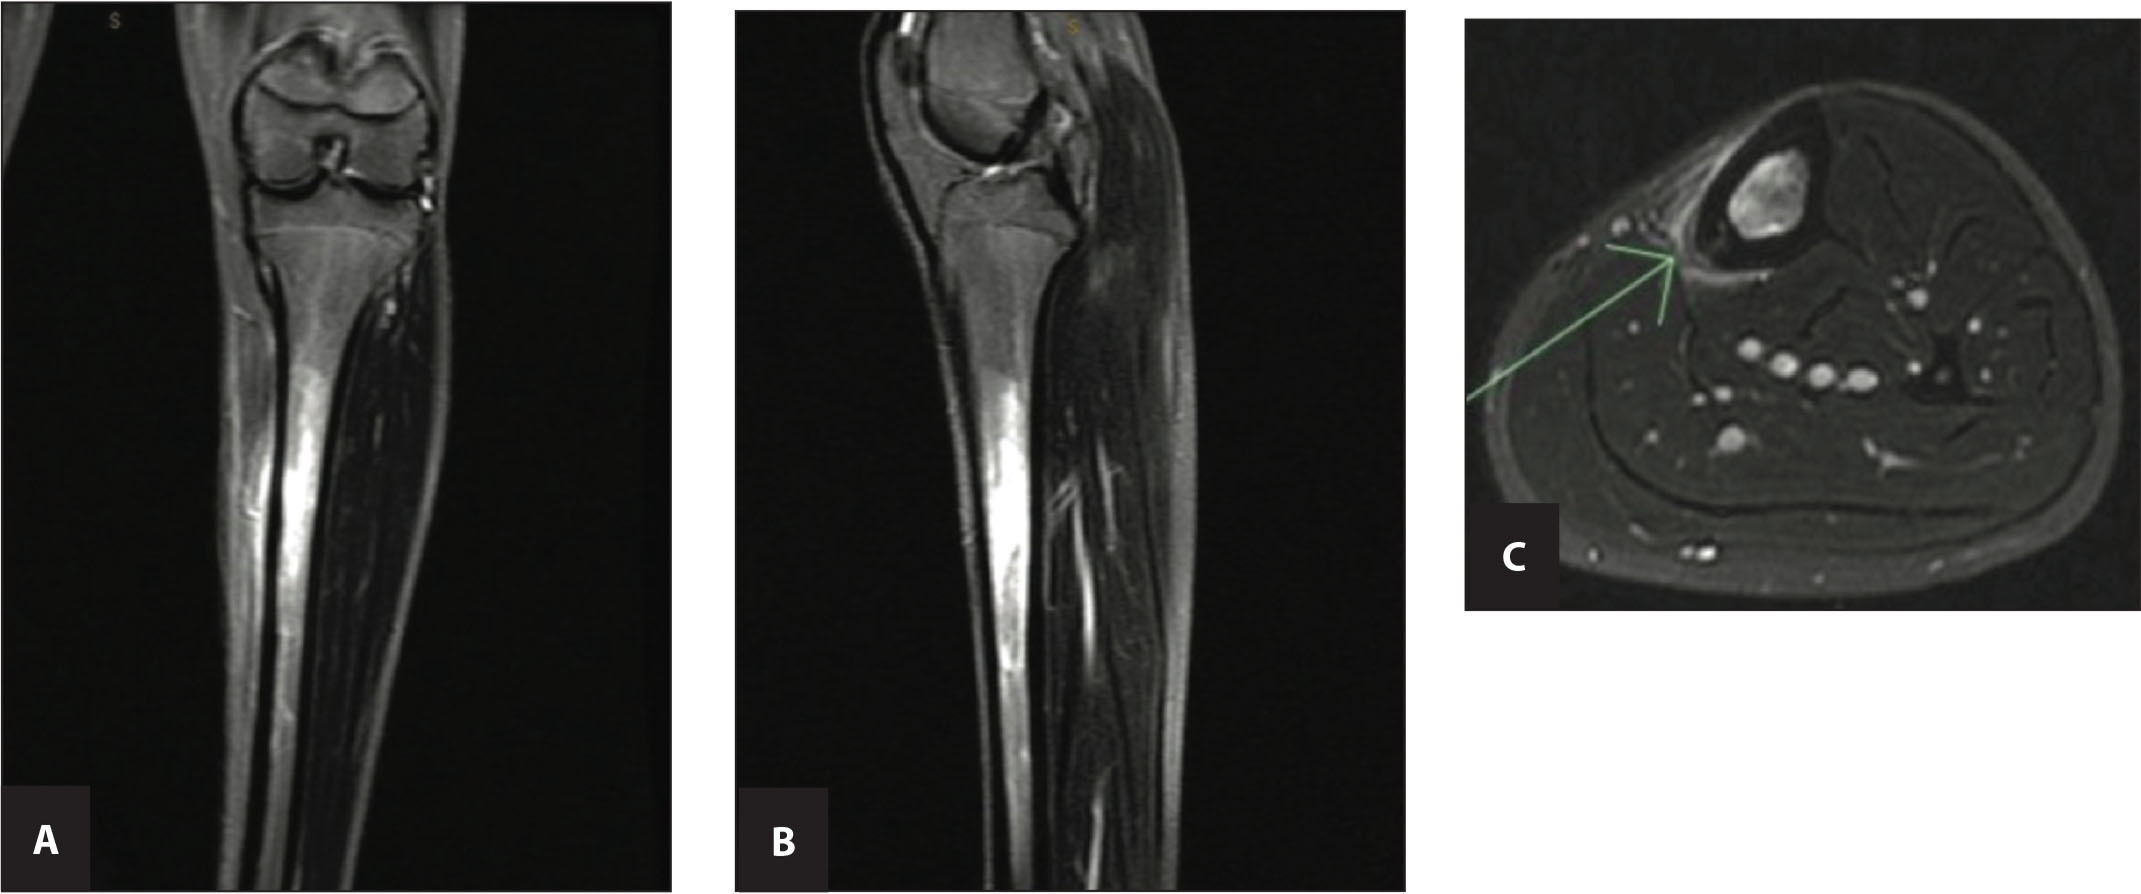 Tibia stress fracture. (A) Coronal view, (B) sagittal view, and (C) axial view. Magnetic resonance imaging reveals significant soft tissue and bone marrow edema surrounding the stress fracture identified in the axial image (arrow). Reprinted with permission of SLACK Inc.24